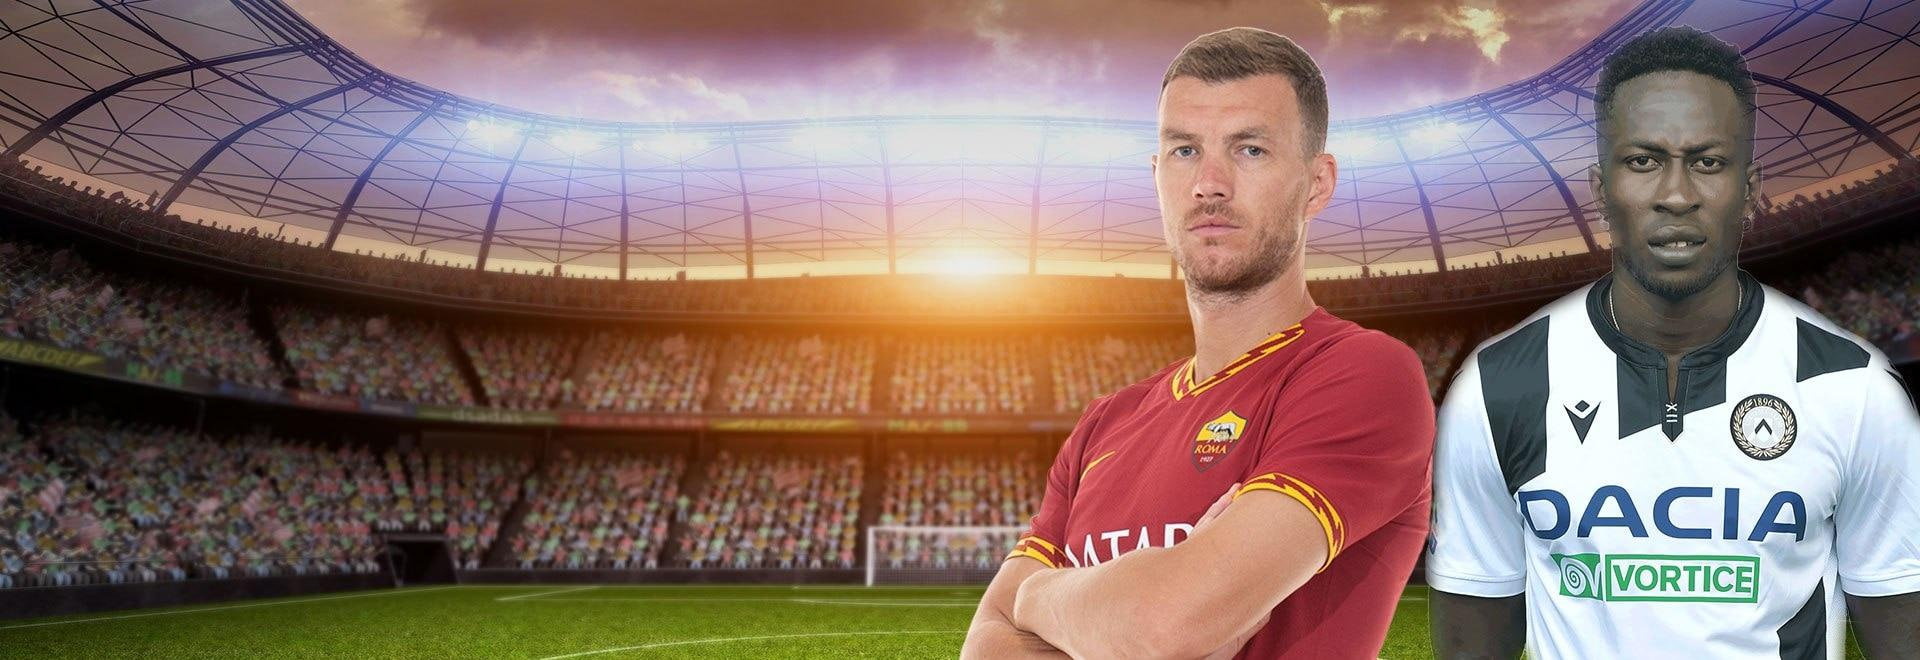 Roma - Udinese. 29a g.